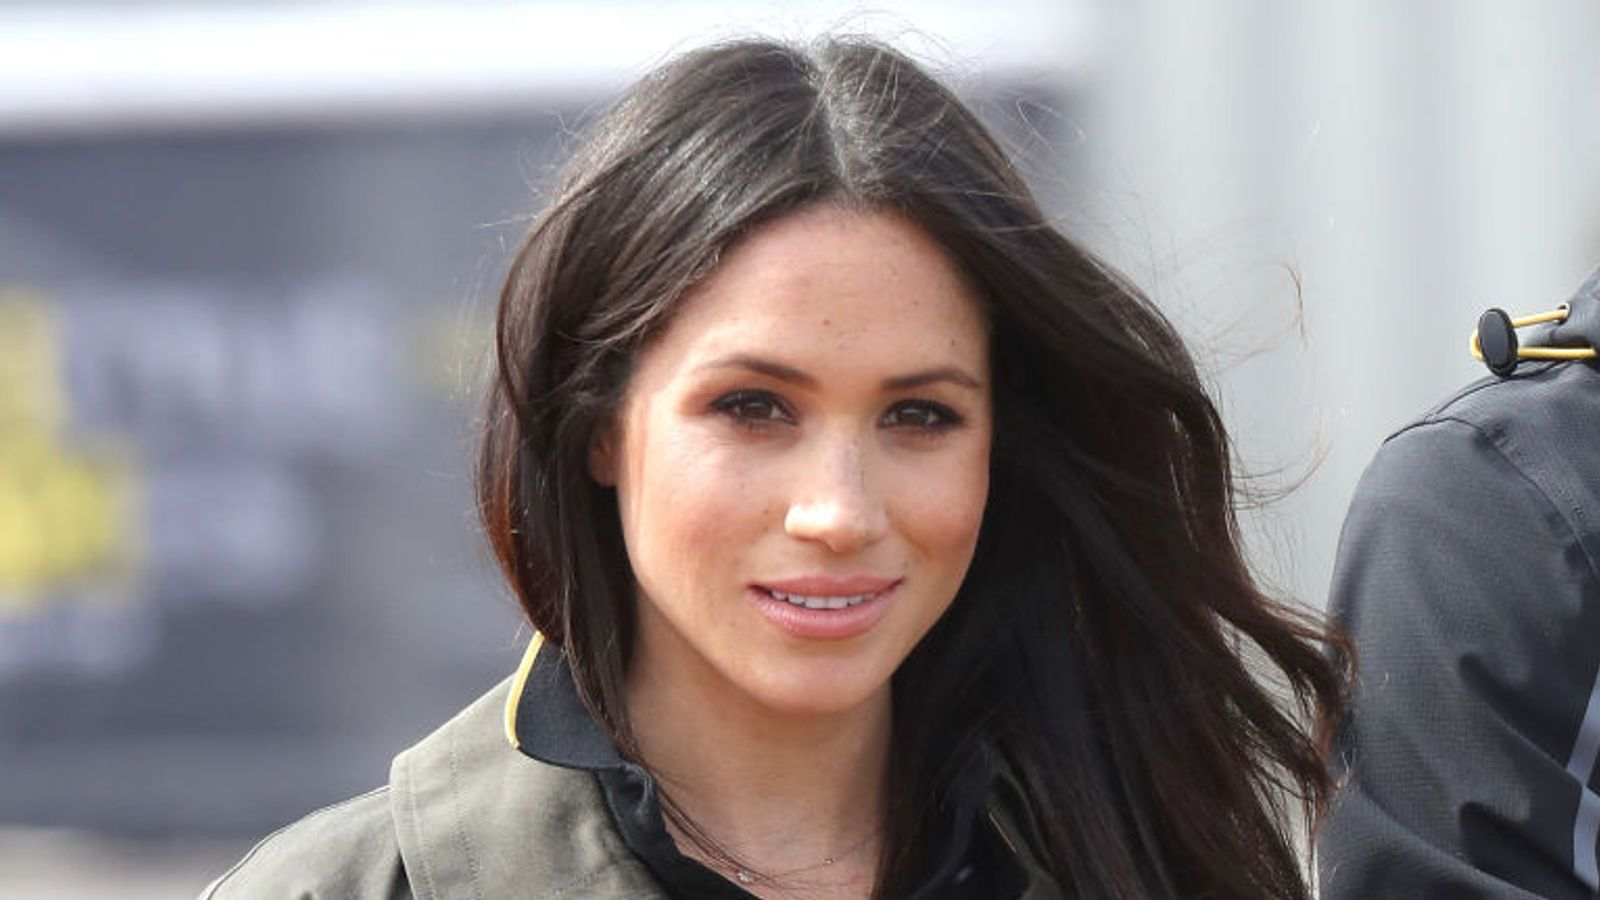 Palace told Meghan not to wear M and H initial necklace, new book claims